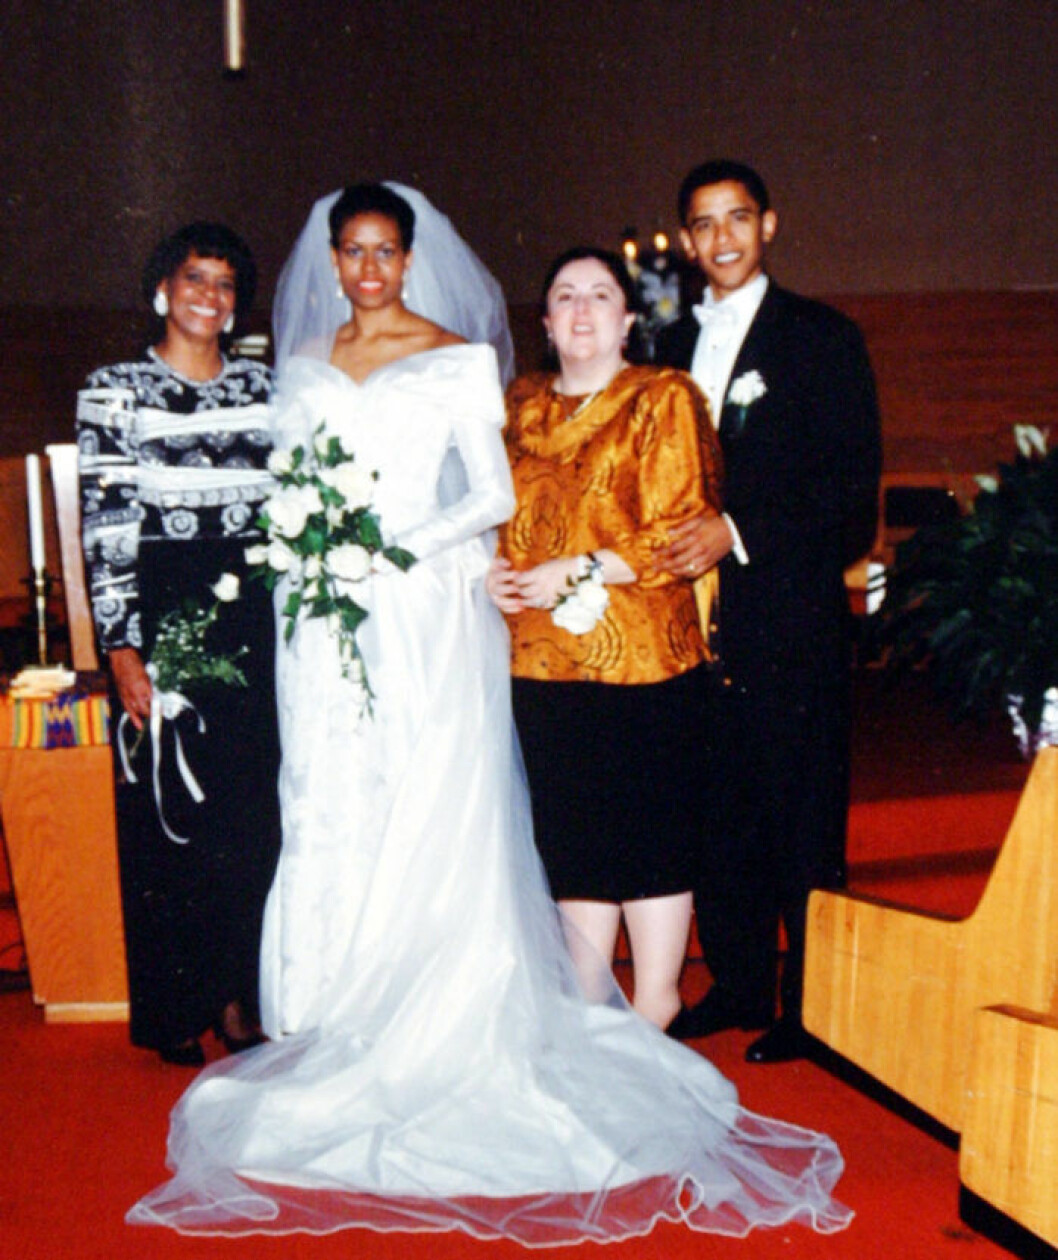 1992: Barack Obama and his wife Michelle Robinson Obama on their wedding day with Marian Robinson (L) and his mother Ann Dunham (second from right). Barack Hussein Obama (born August 4, 1961) is the junior U.S. Senator from Illinois. In November 2004, he was elected to the Senate as a Democrat. He is married to Michelle Obama and is a father to two daughters. On January 3, 2008 he came first in the Iowa caucus for the American presidency. (OfA/Polaris) /// Barack Obama and his wife Michelle Robinson Obama on their wedding day with Marian Robinson (L) and his mother Ann Dunham (second from right)